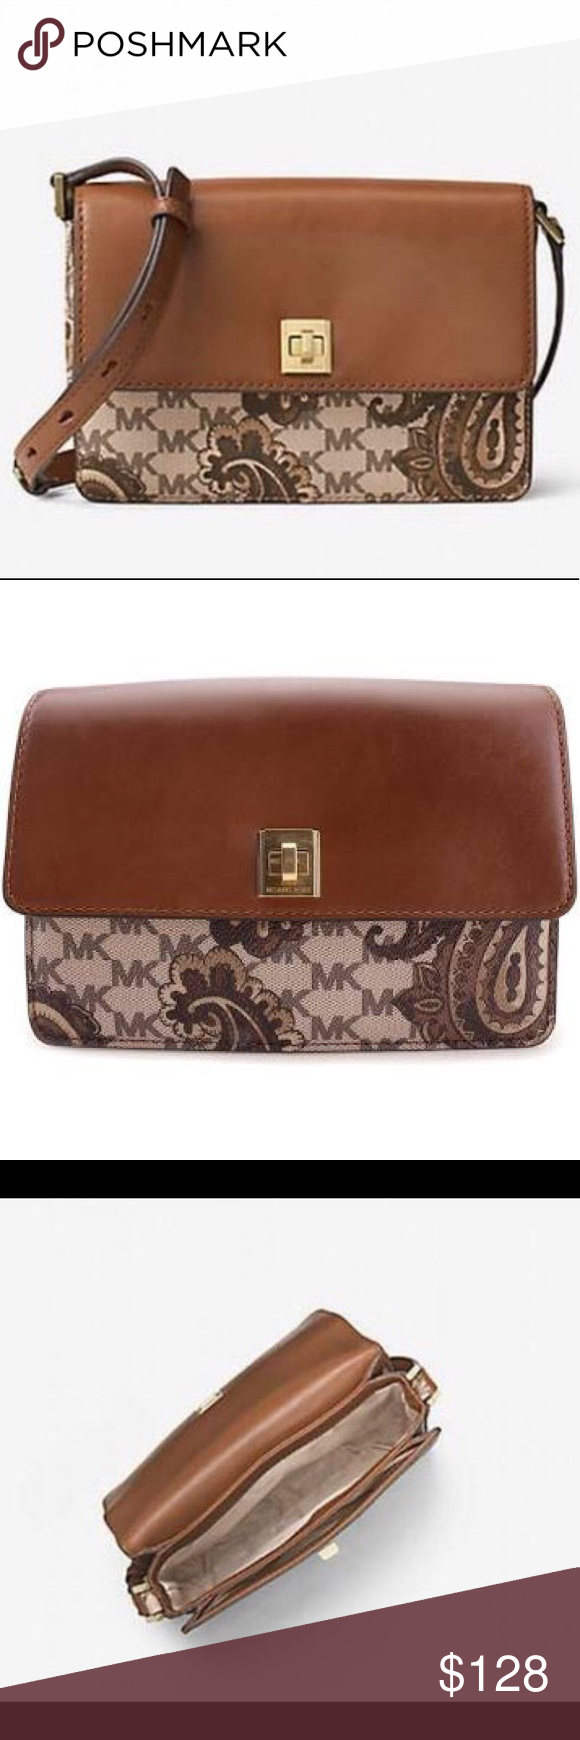 9fca655c7ffbbd MK Natalie M Heritage Paisley Crossbody collection Michael Kors Studio  Collection Natalie Medium Heritage Paisley Crossbody,new with tag and dust  bag.